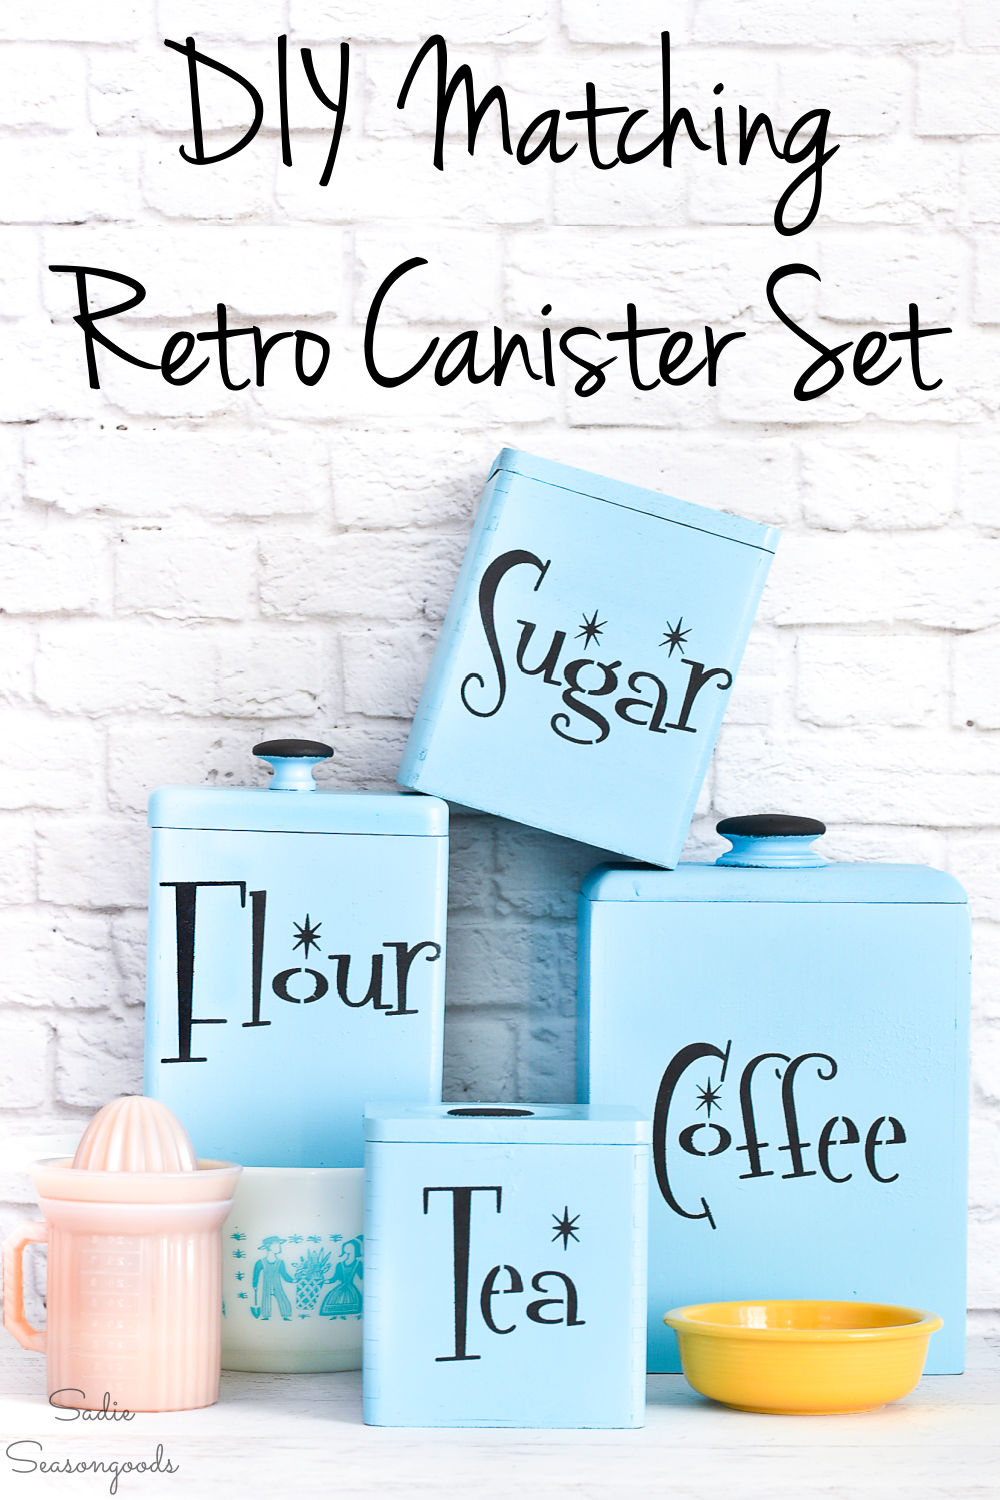 Mid century modern stencils on wooden canisters